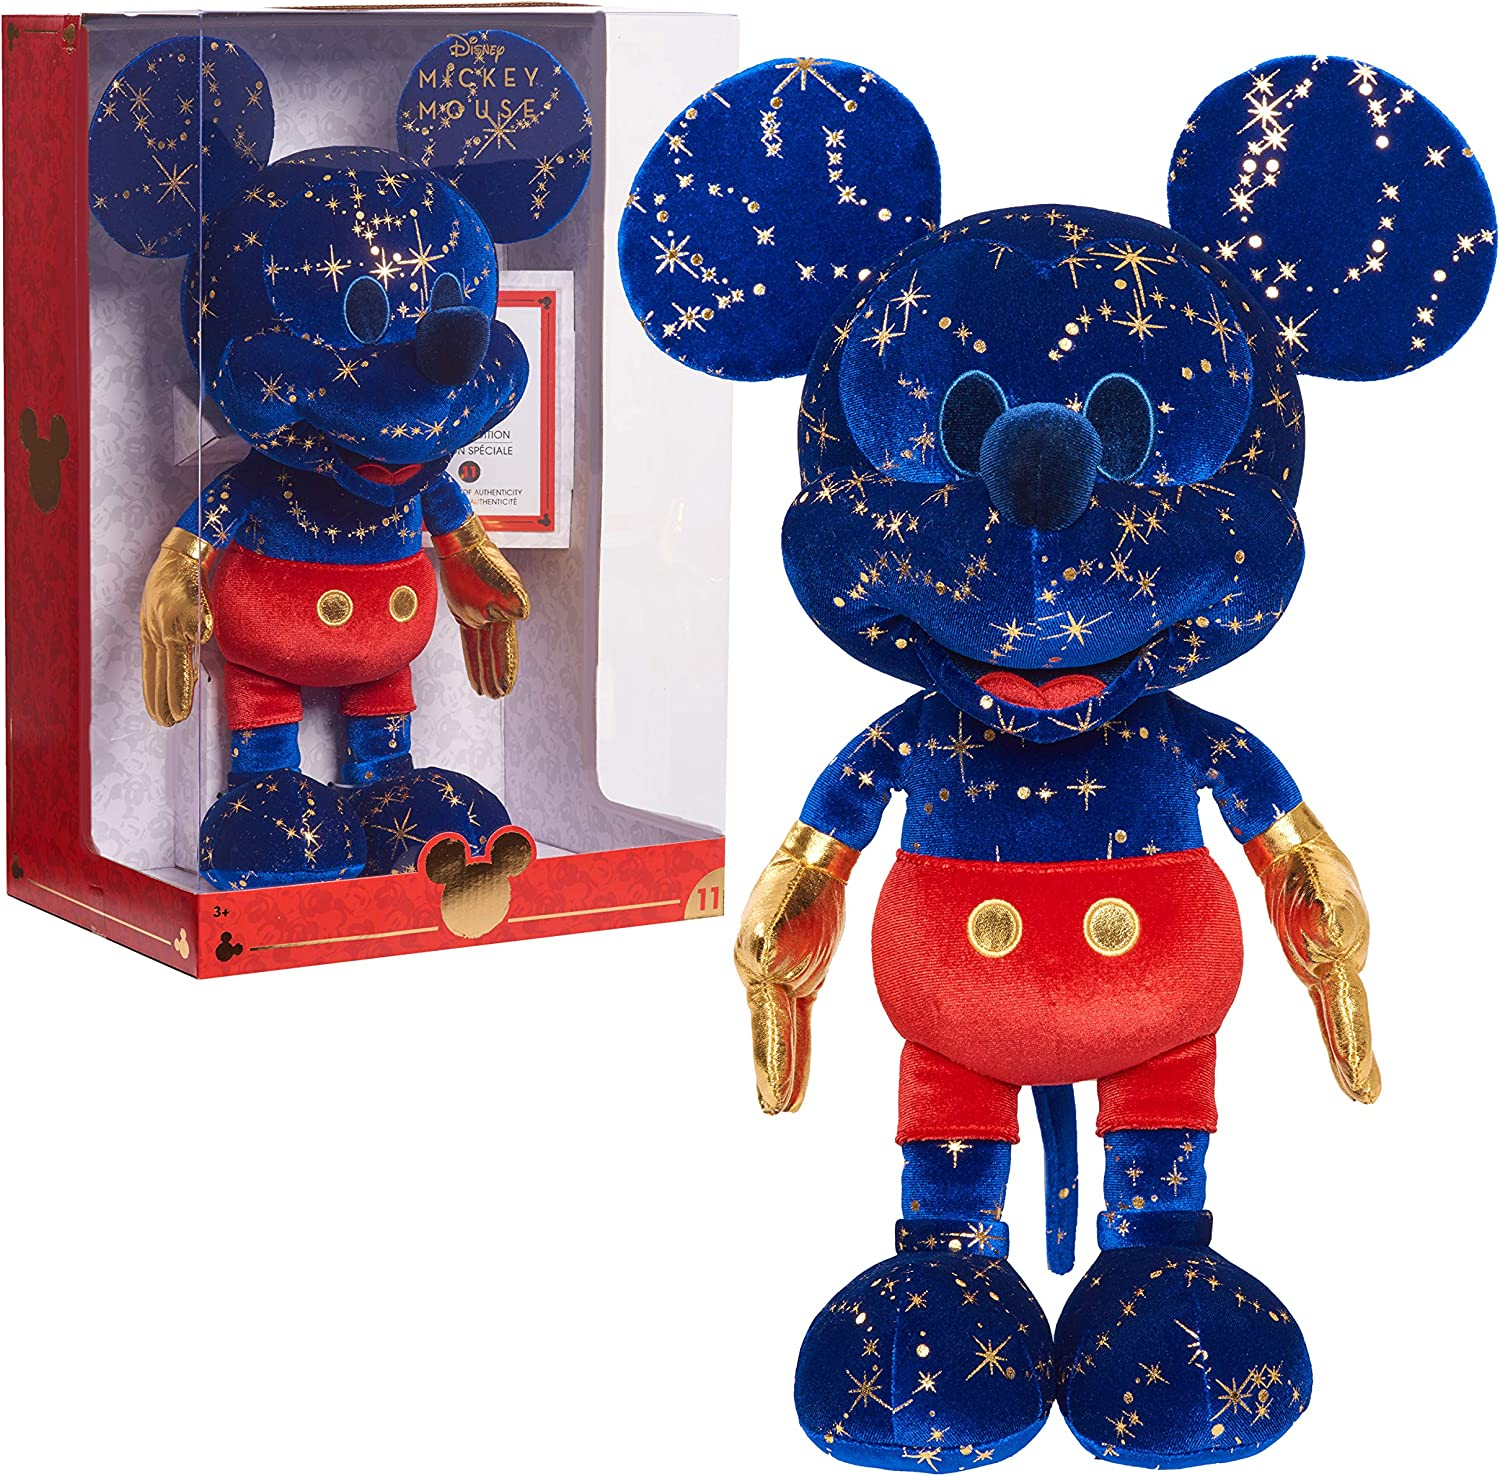 Exclusive Disney Year of the Mouse Collector Plush Fantasia Mickey Mouse